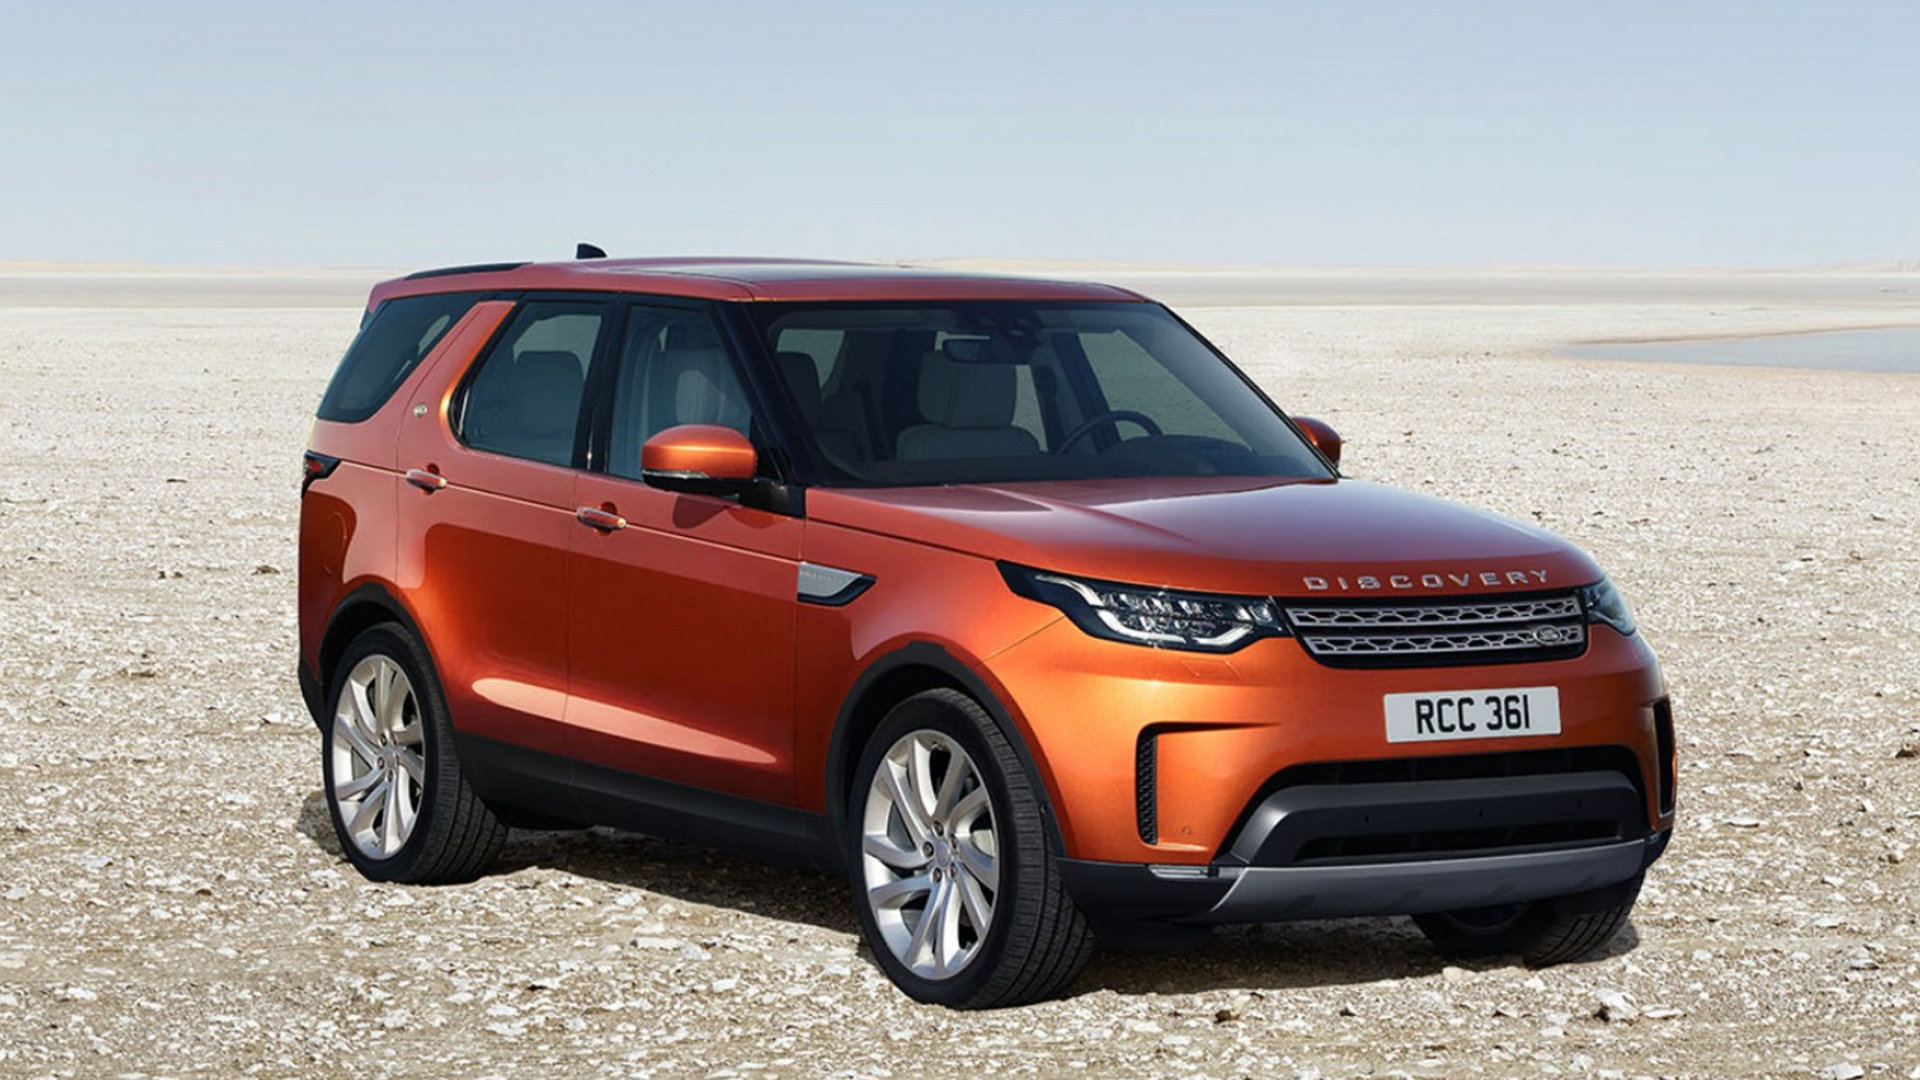 land rover discovery 2017 price mileage reviews specification gallery overdrive. Black Bedroom Furniture Sets. Home Design Ideas